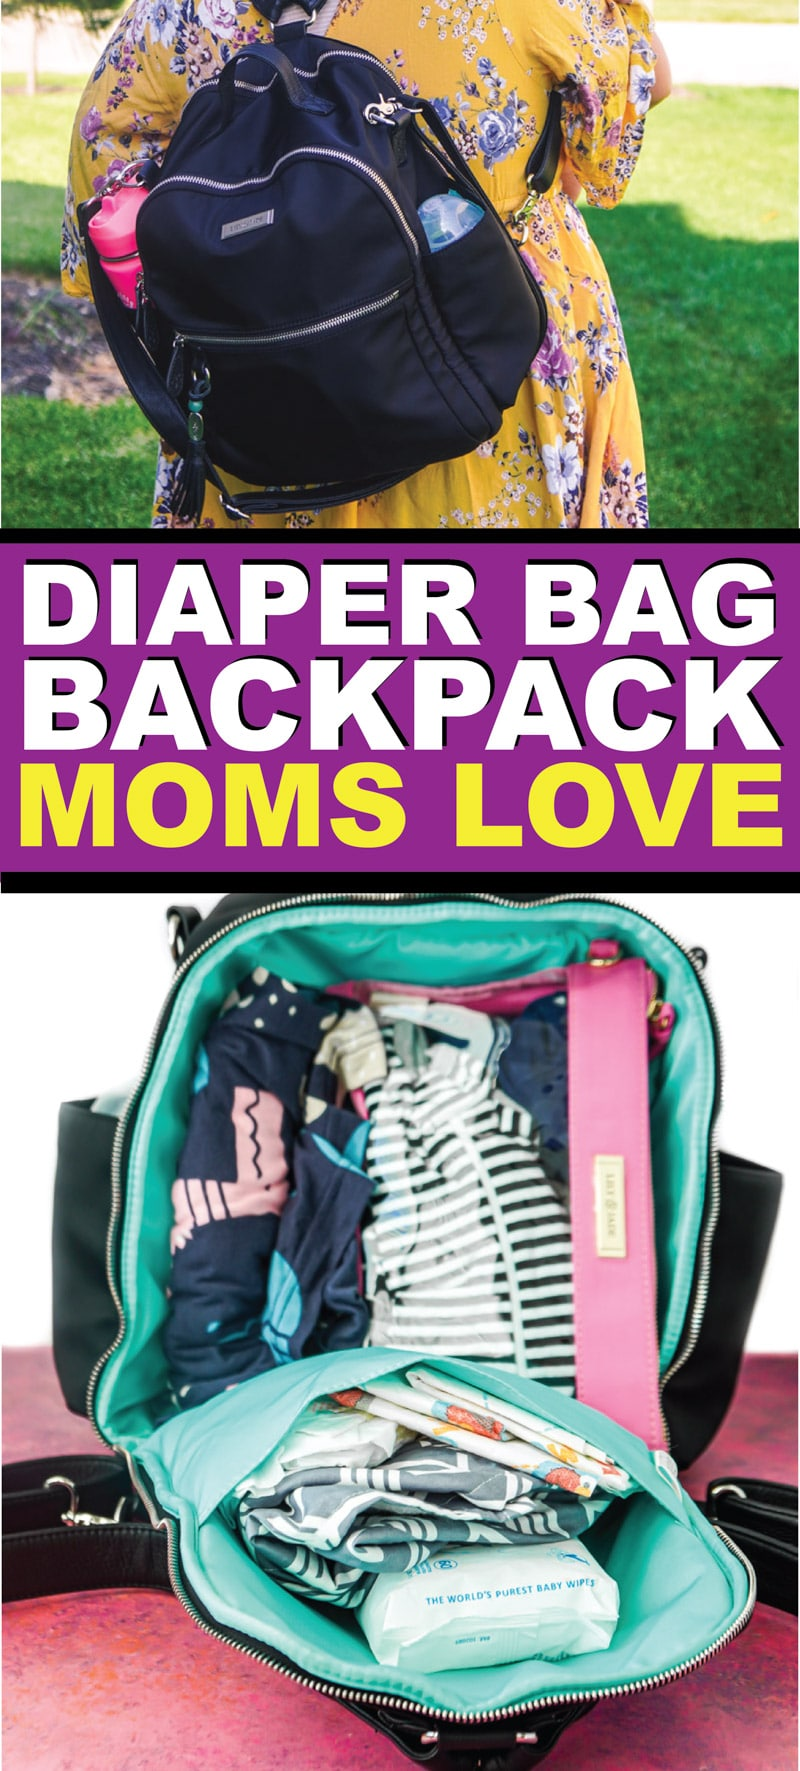 Find out why this Lily Jade diaper bag backpack is perfect for travel or just staying close to home! A full review including a video walkthrough of the bag. via @playpartyplan